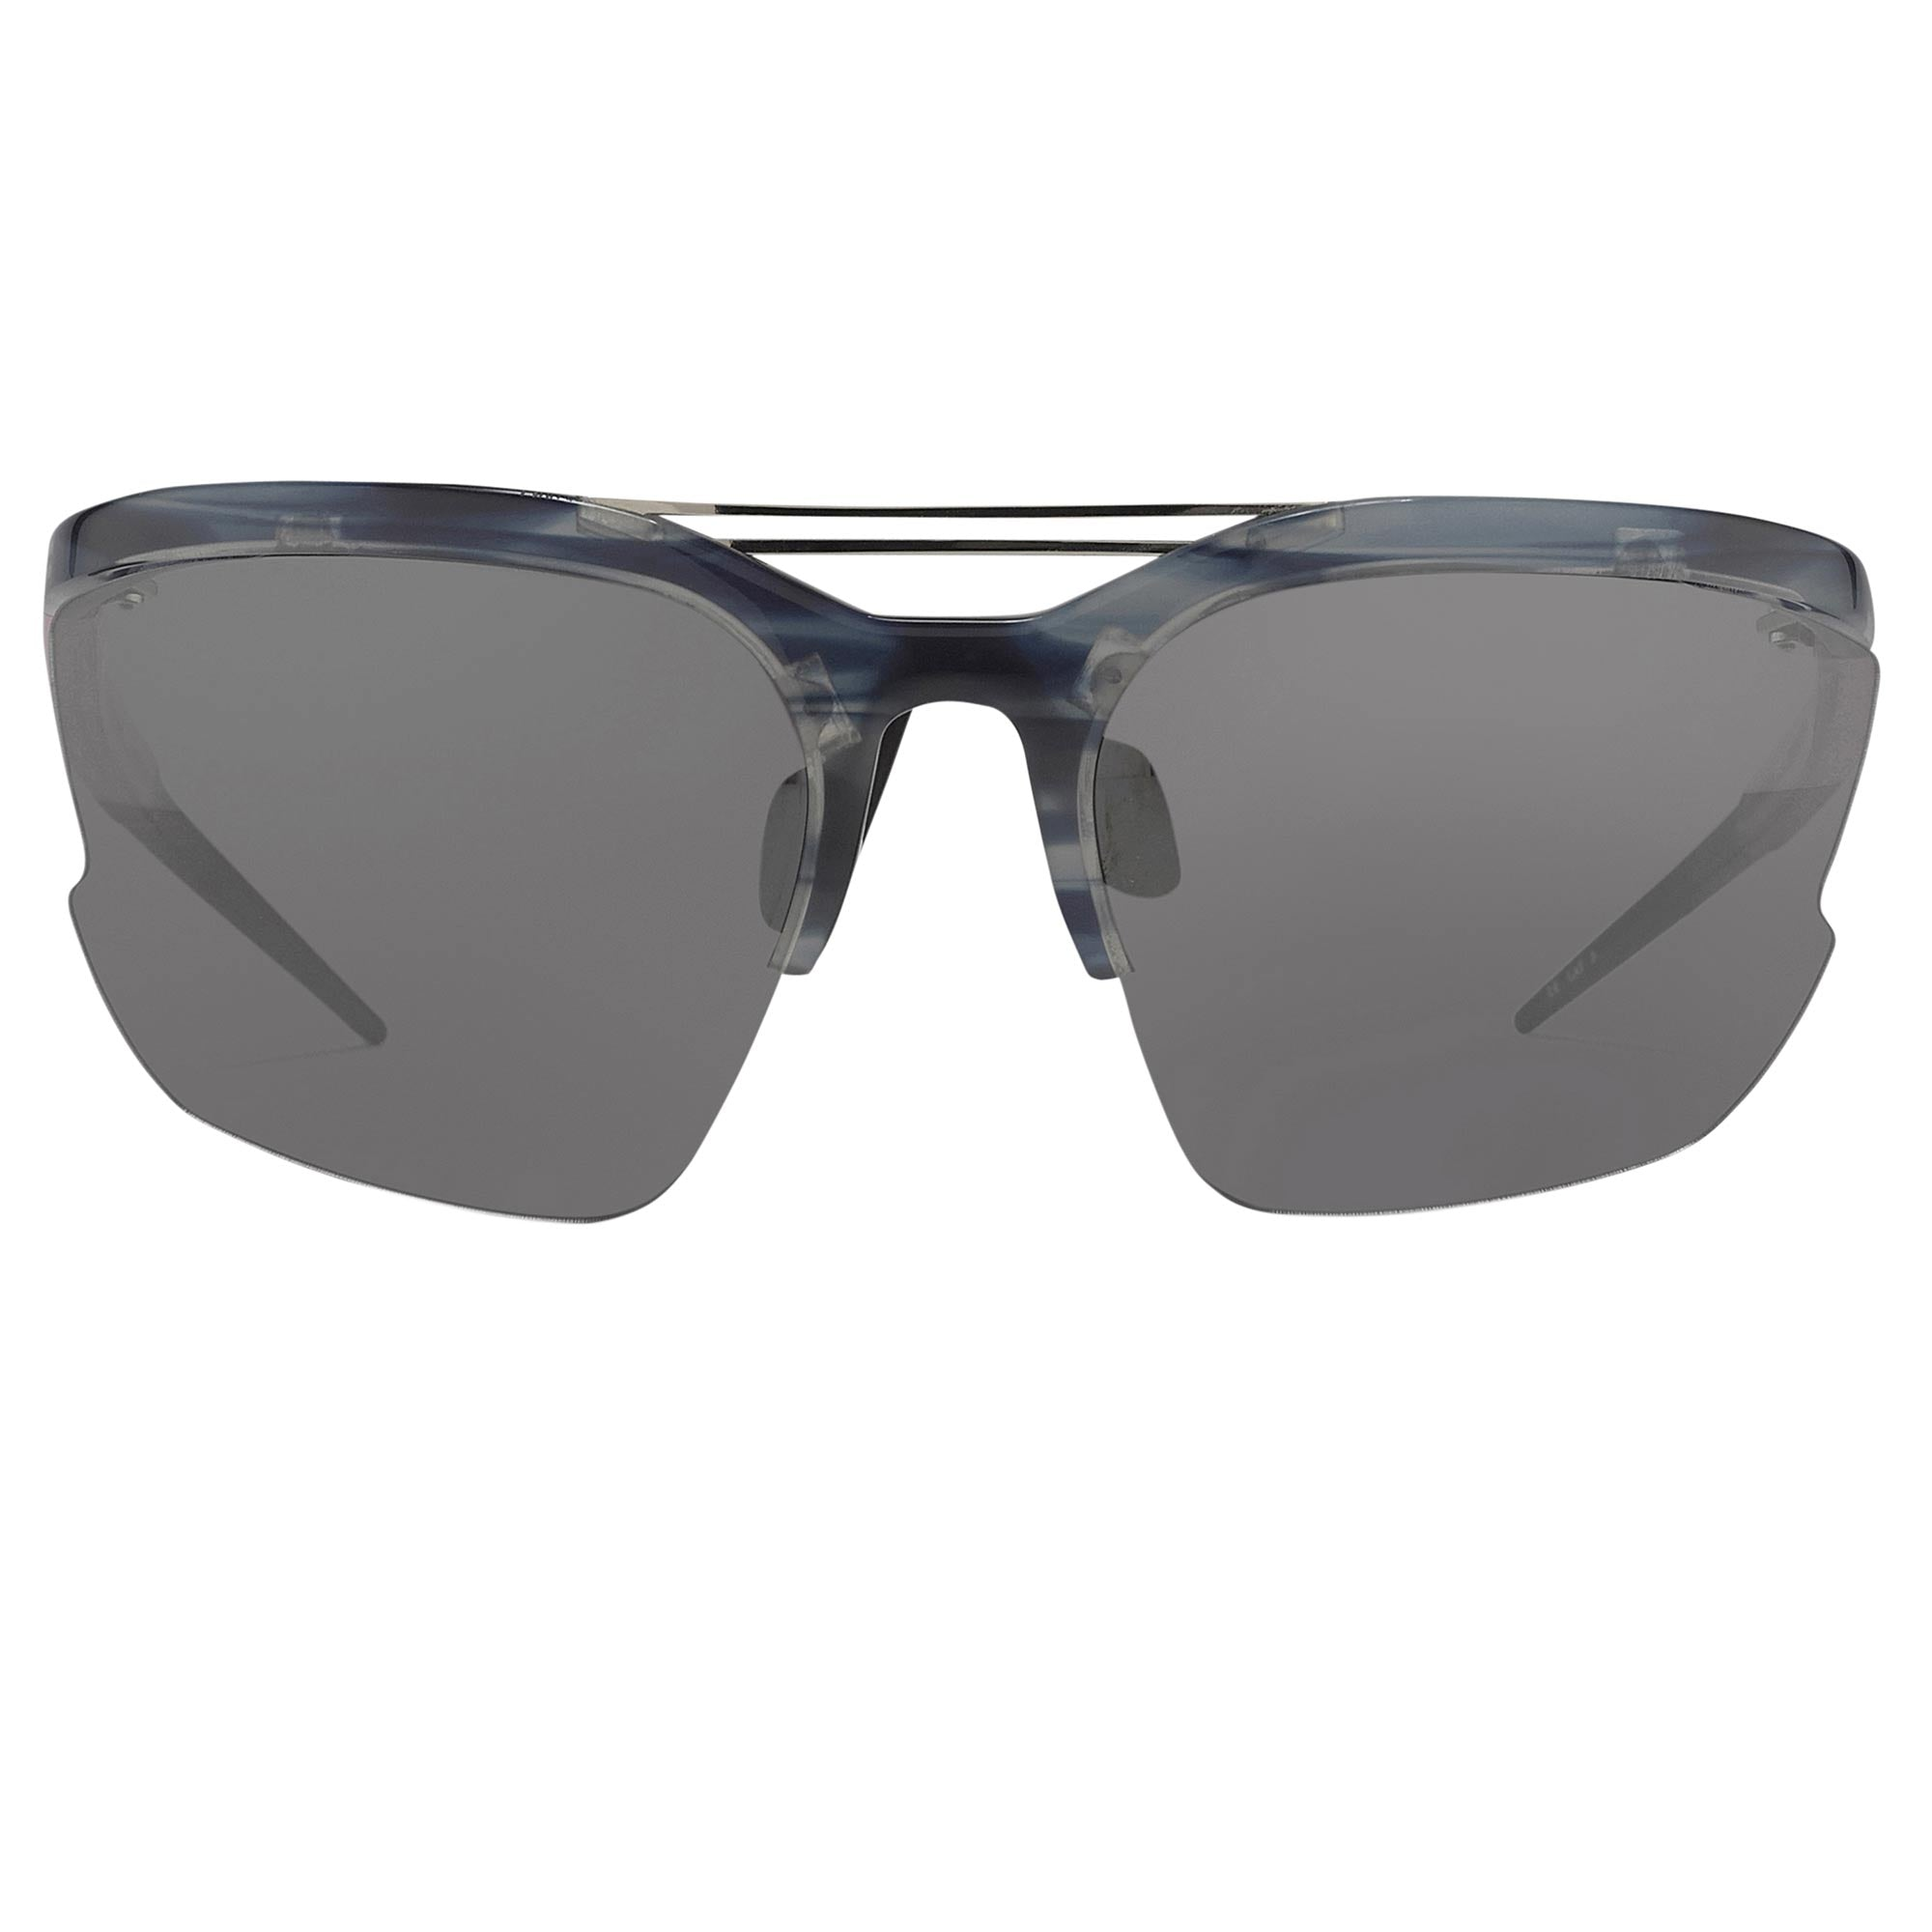 Prabal Gurung Sunglasses Female Special Frame Blue Horn Category 3 Black Lenses PG21C1SUN - Watches & Crystals